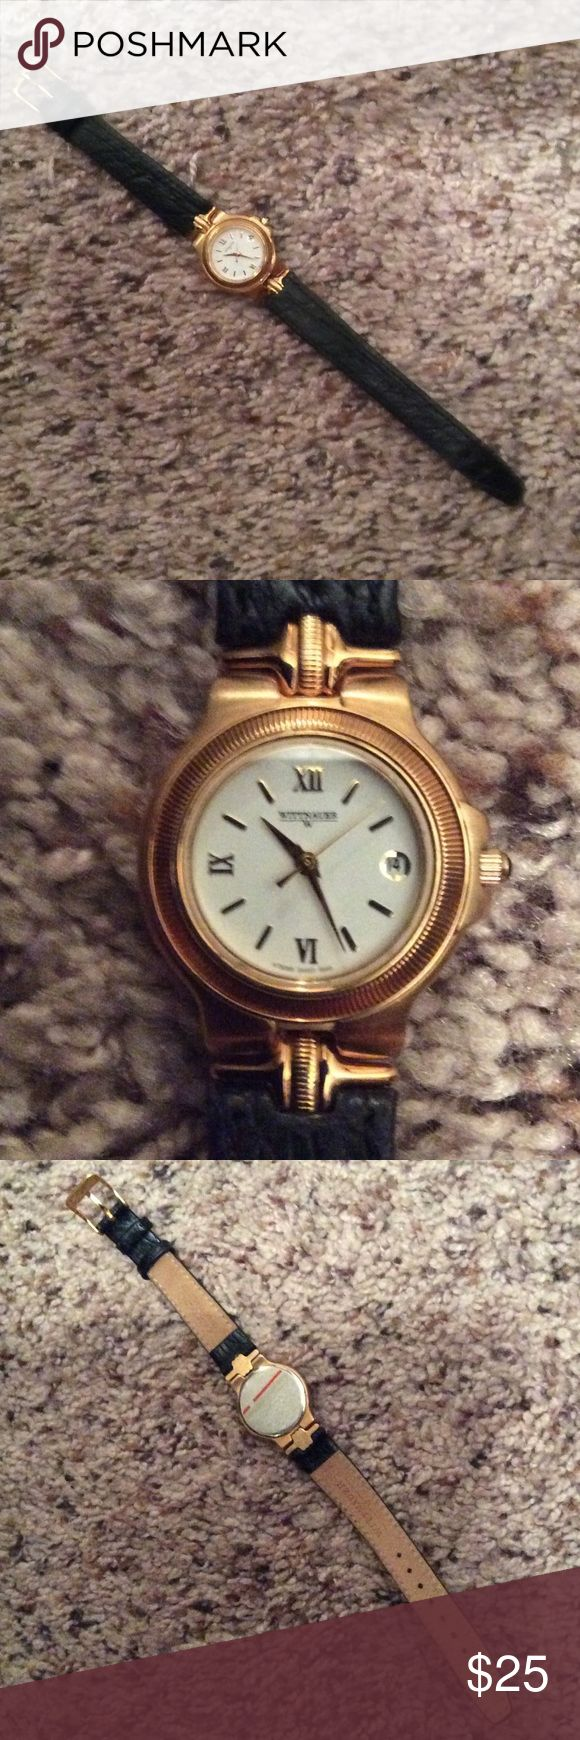 Wittnauer leather band watch - never worn Brown band with gold/white face and a second hand and date. Needs a battery though. Jewelry